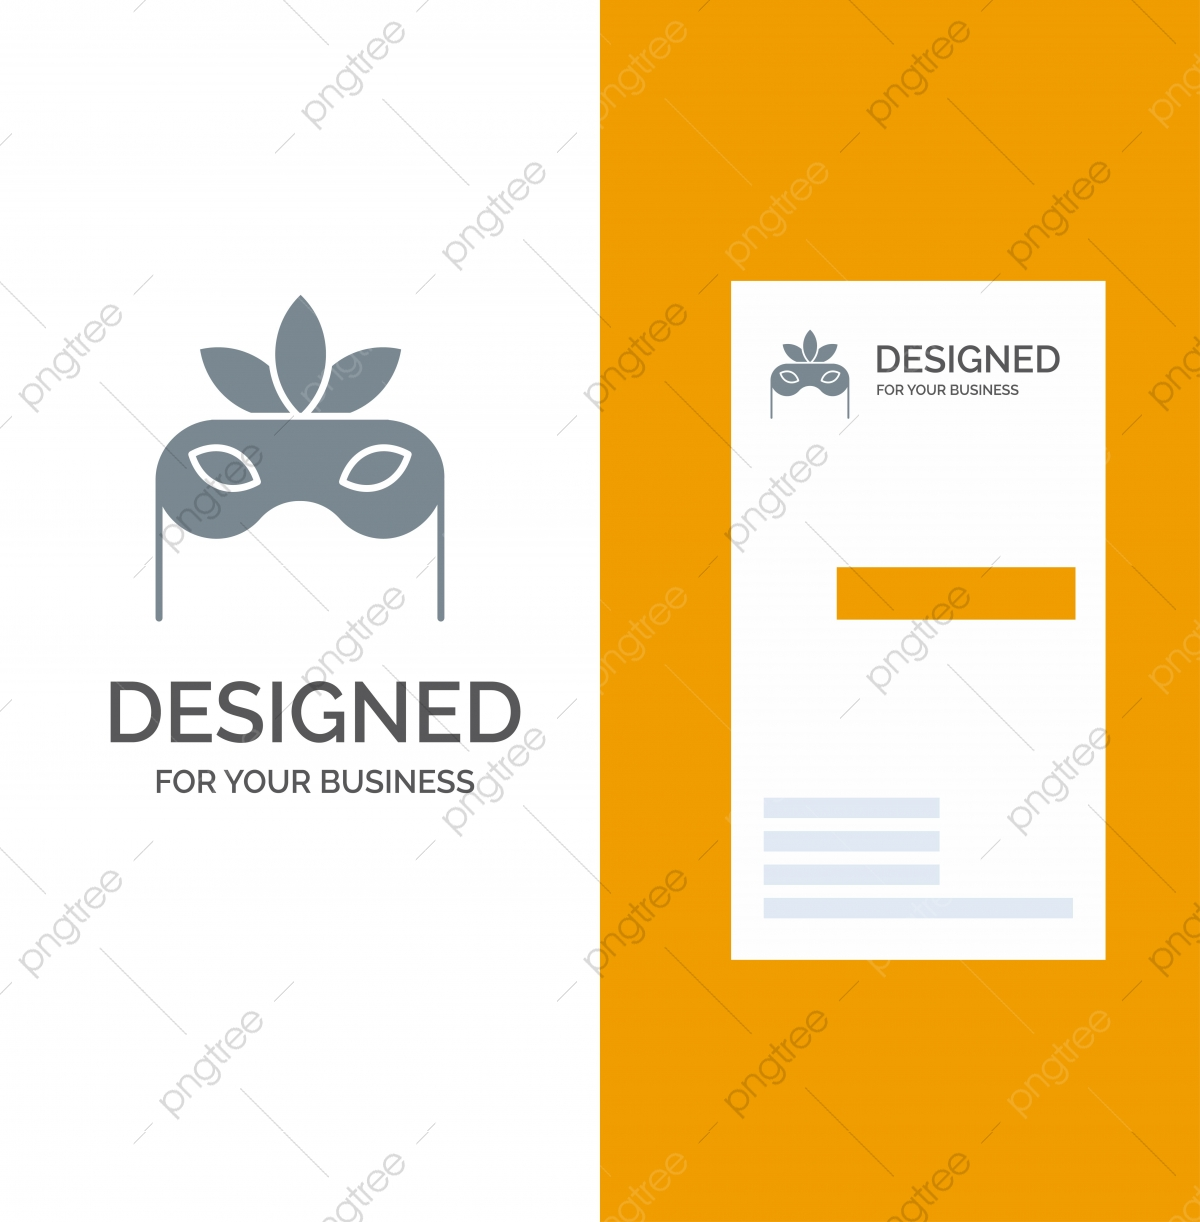 tragedy png images vector and psd files free download on pngtree https pngtree com freepng costume mask masquerade grey logo design and business card tem 4710374 html